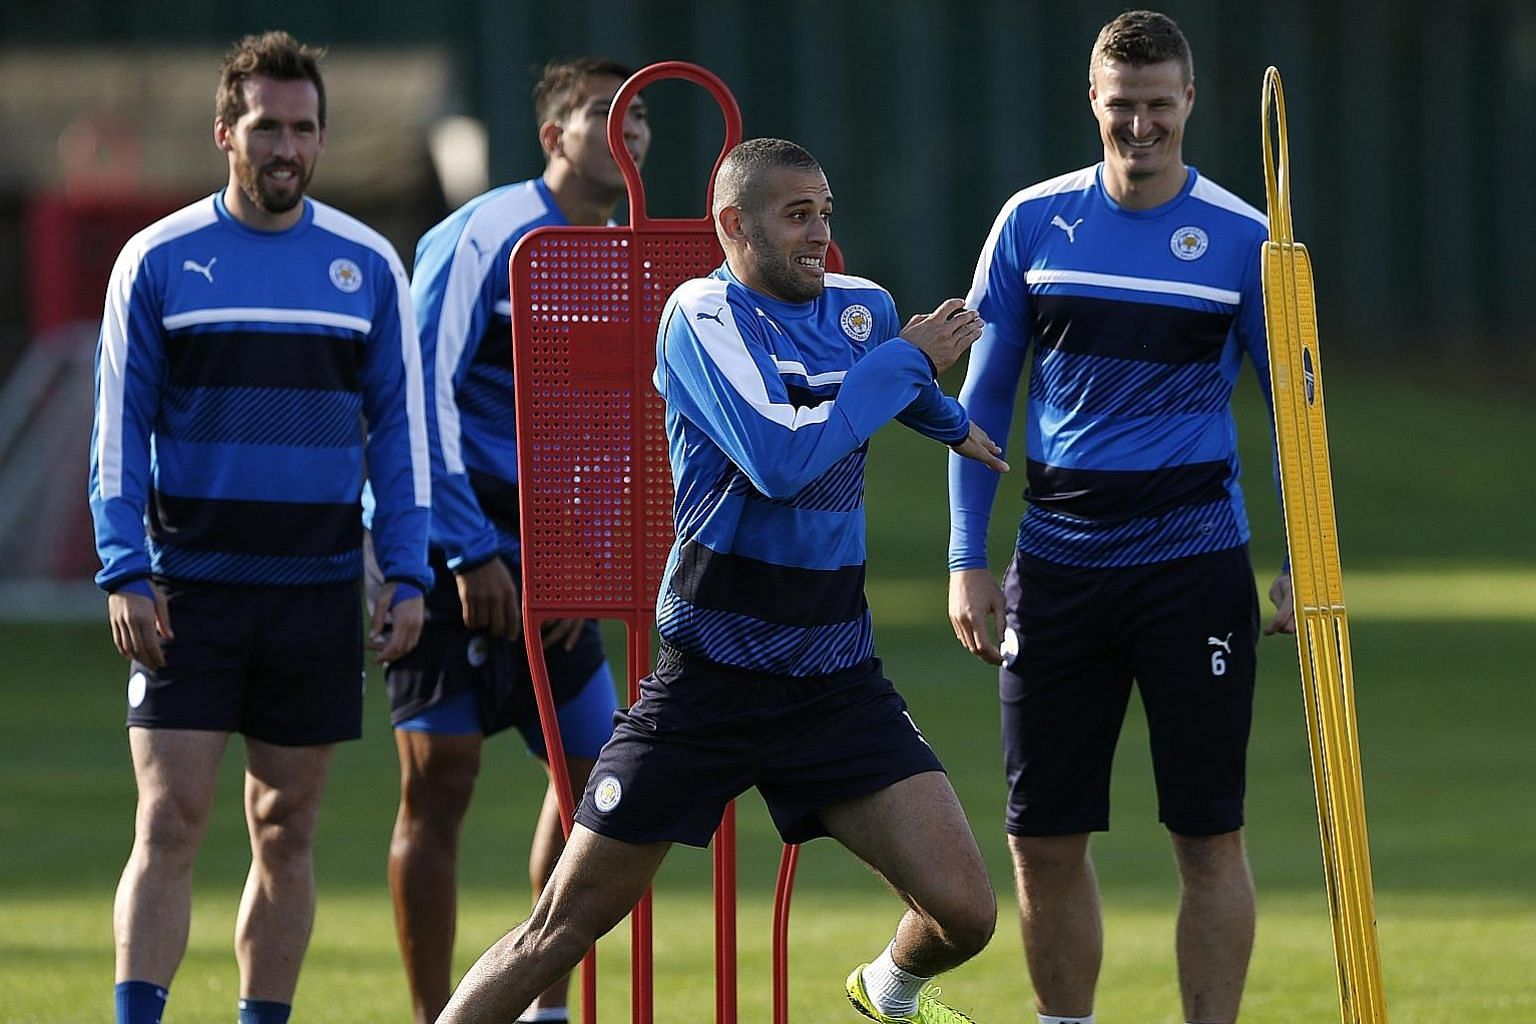 (From left) Leicester's Christian Fuchs, Islam Slimani and Robert Huth during training. Slimani may play after recovering from a groin injury.